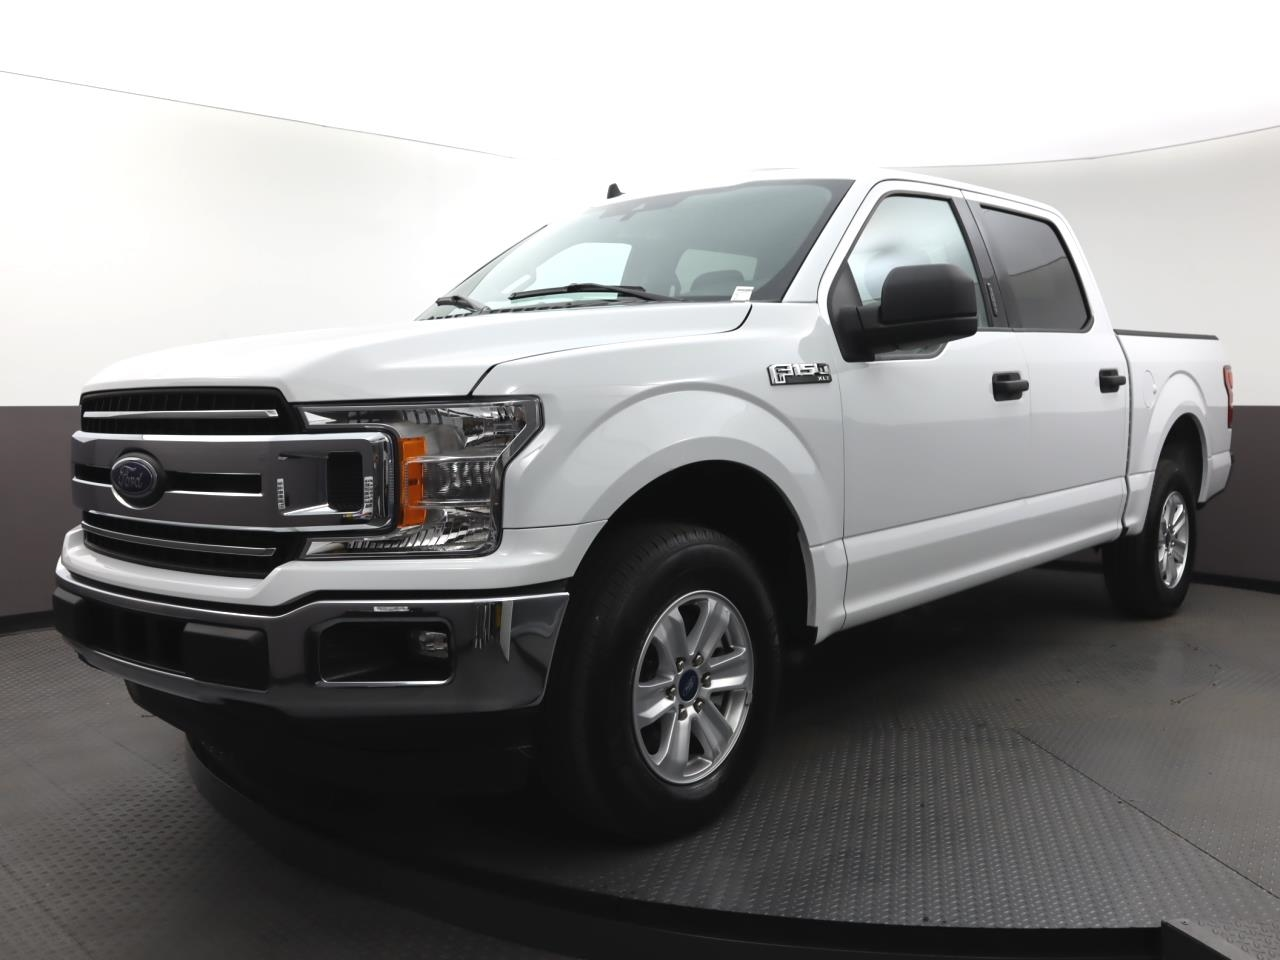 Used FORD F-150 2020 MARGATE XLT